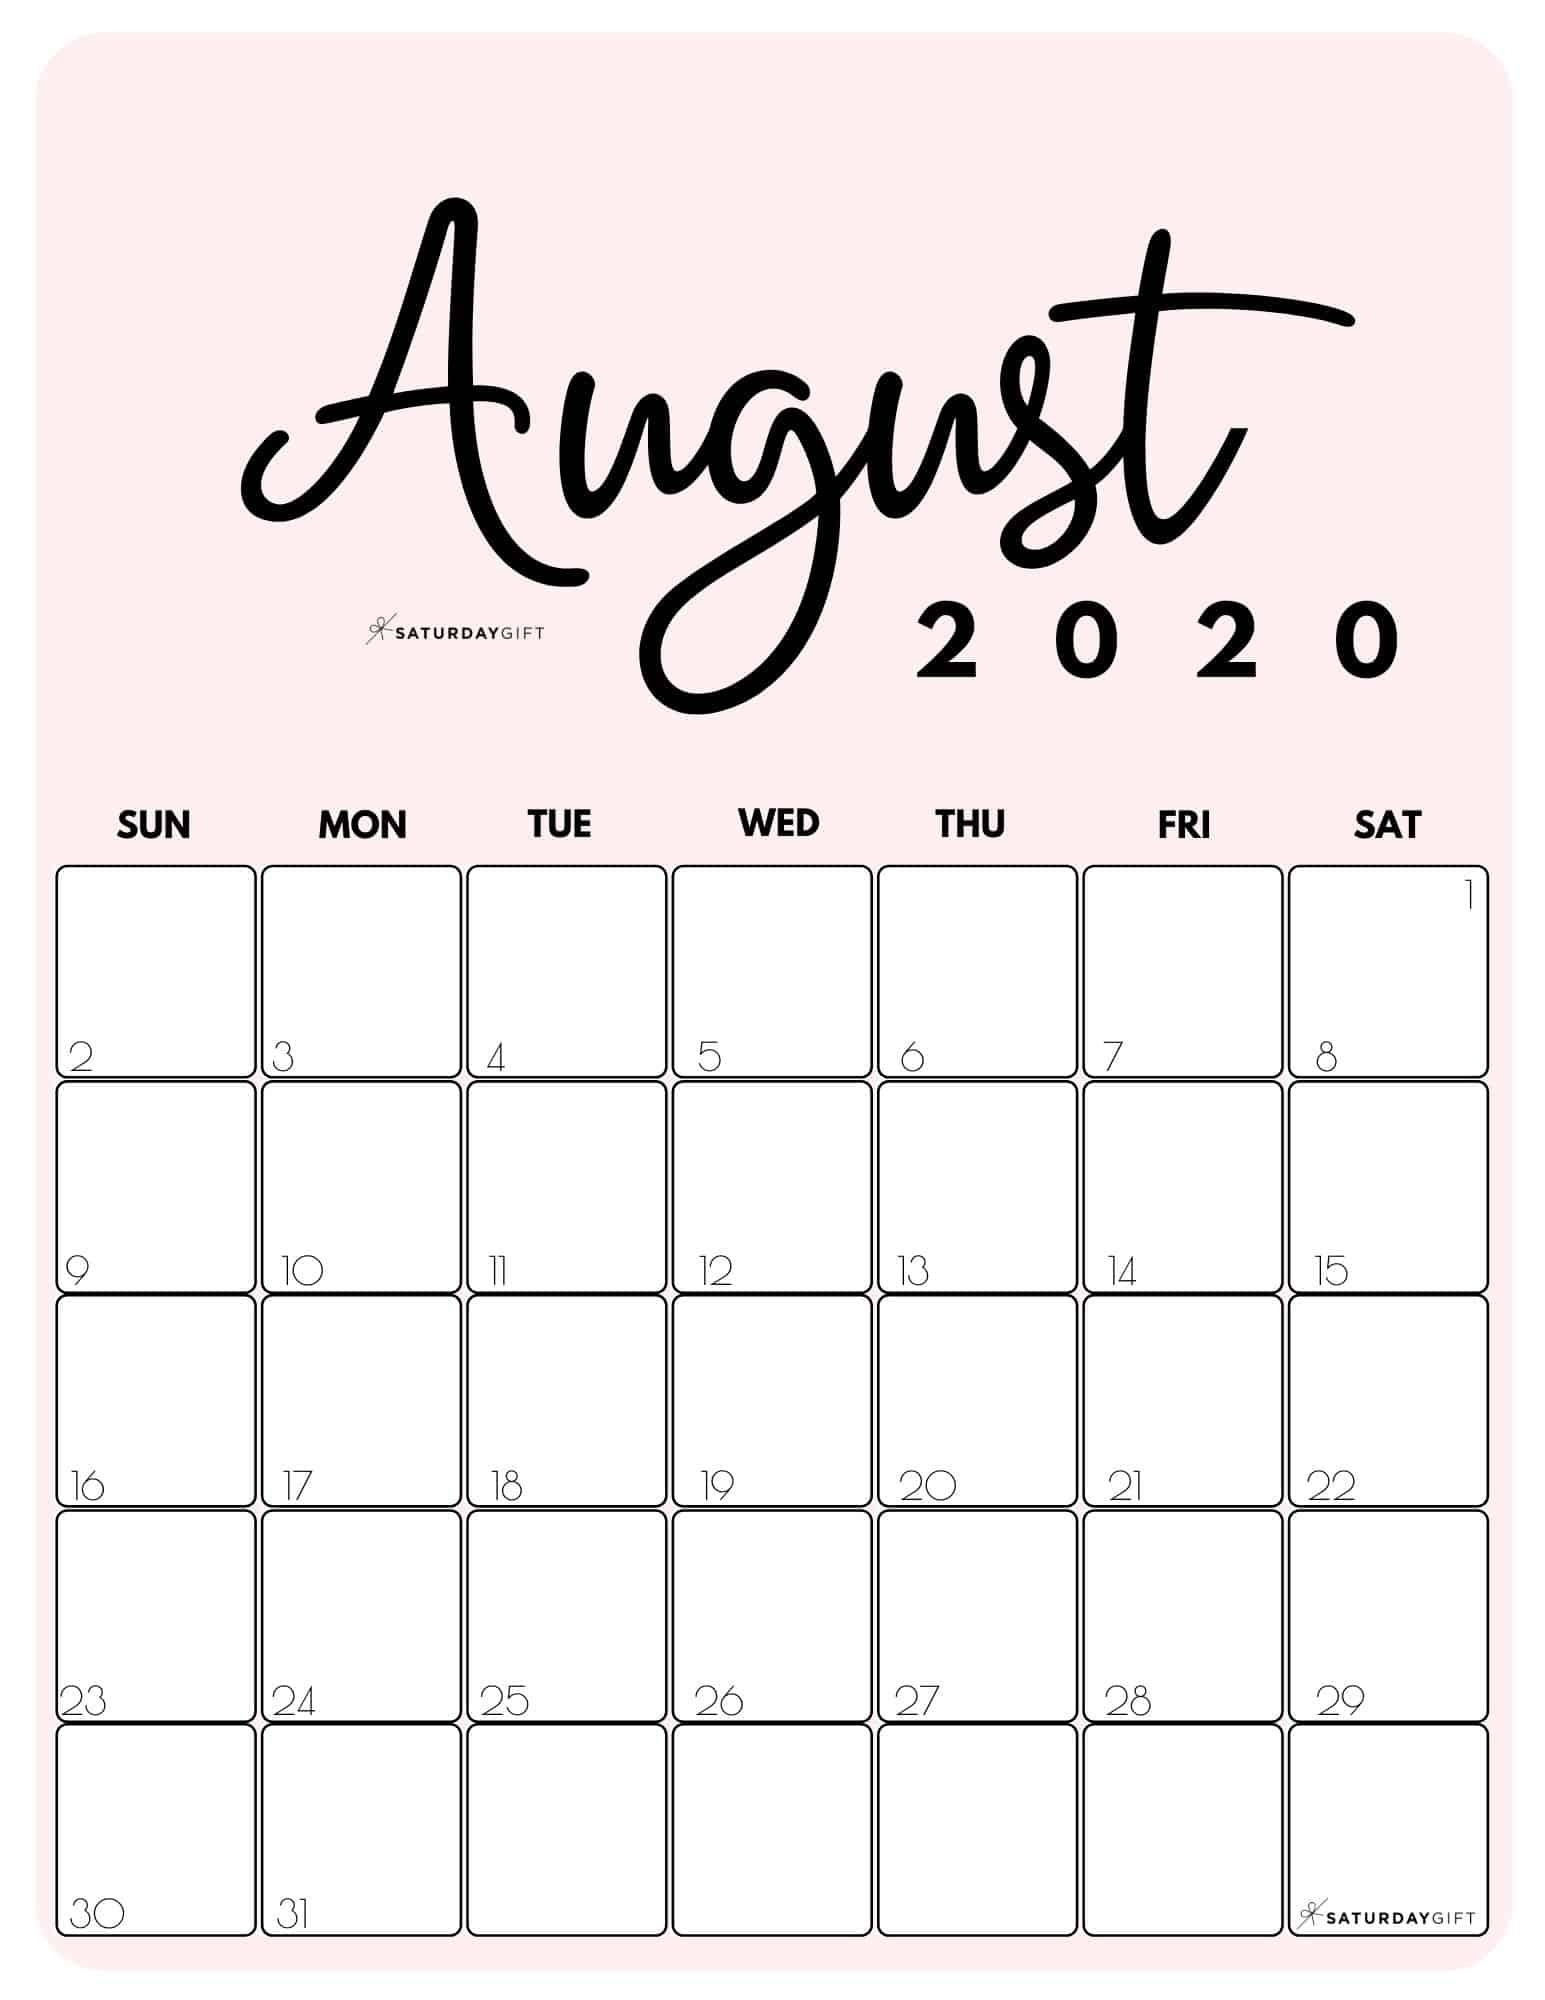 Get Pretty Calender For Month Of August